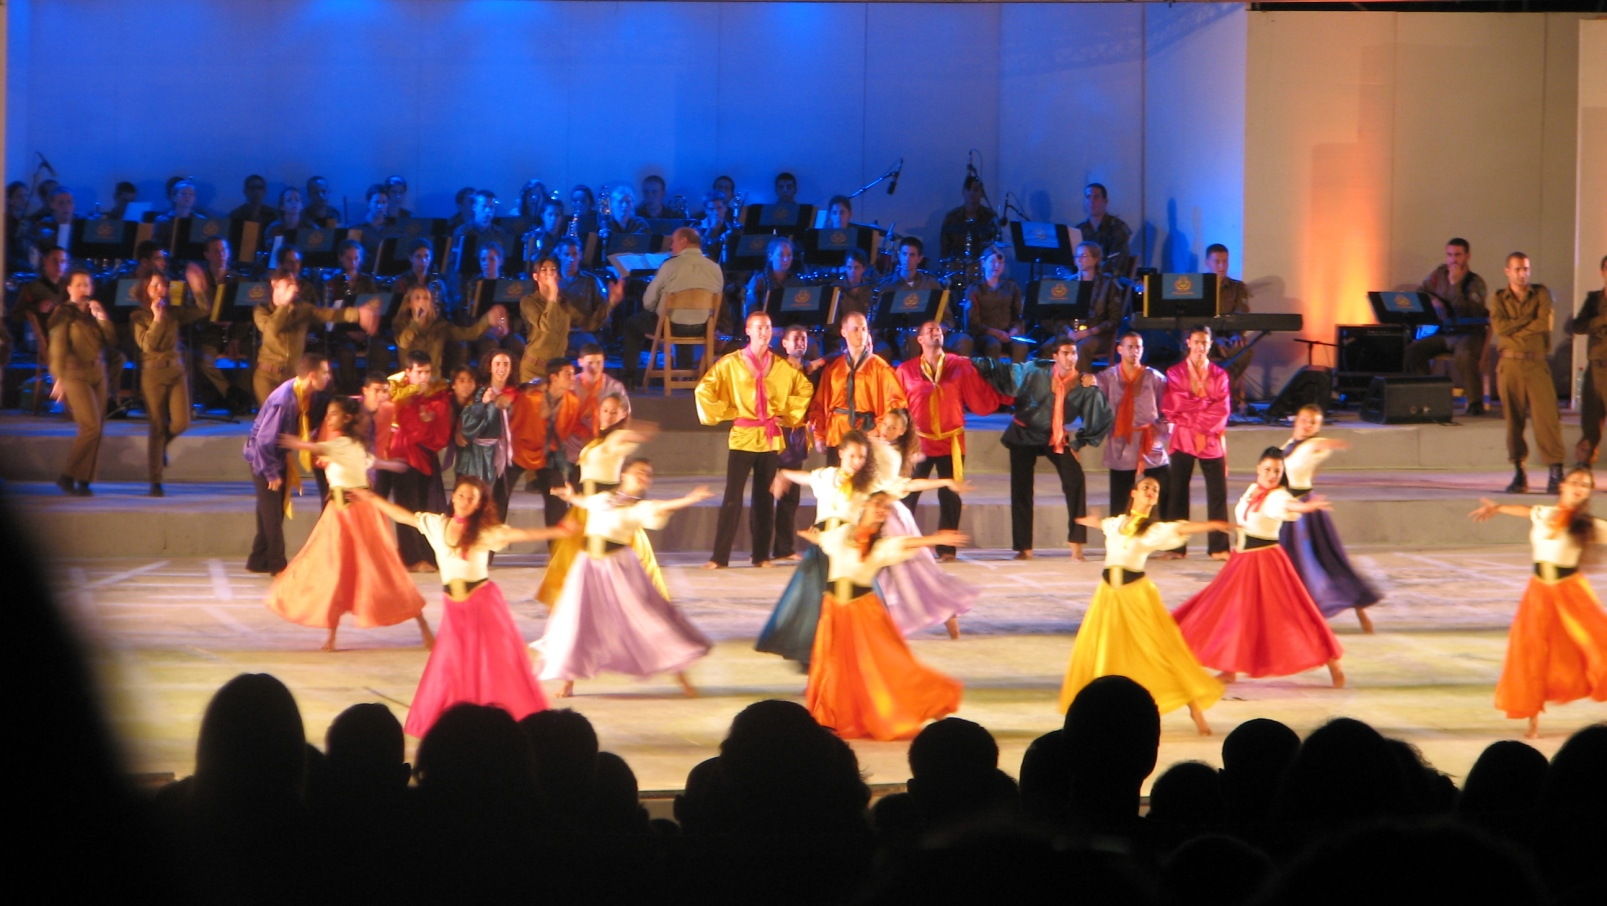 Photo of Karmiel Dance Festival via Wikimedia Commons.